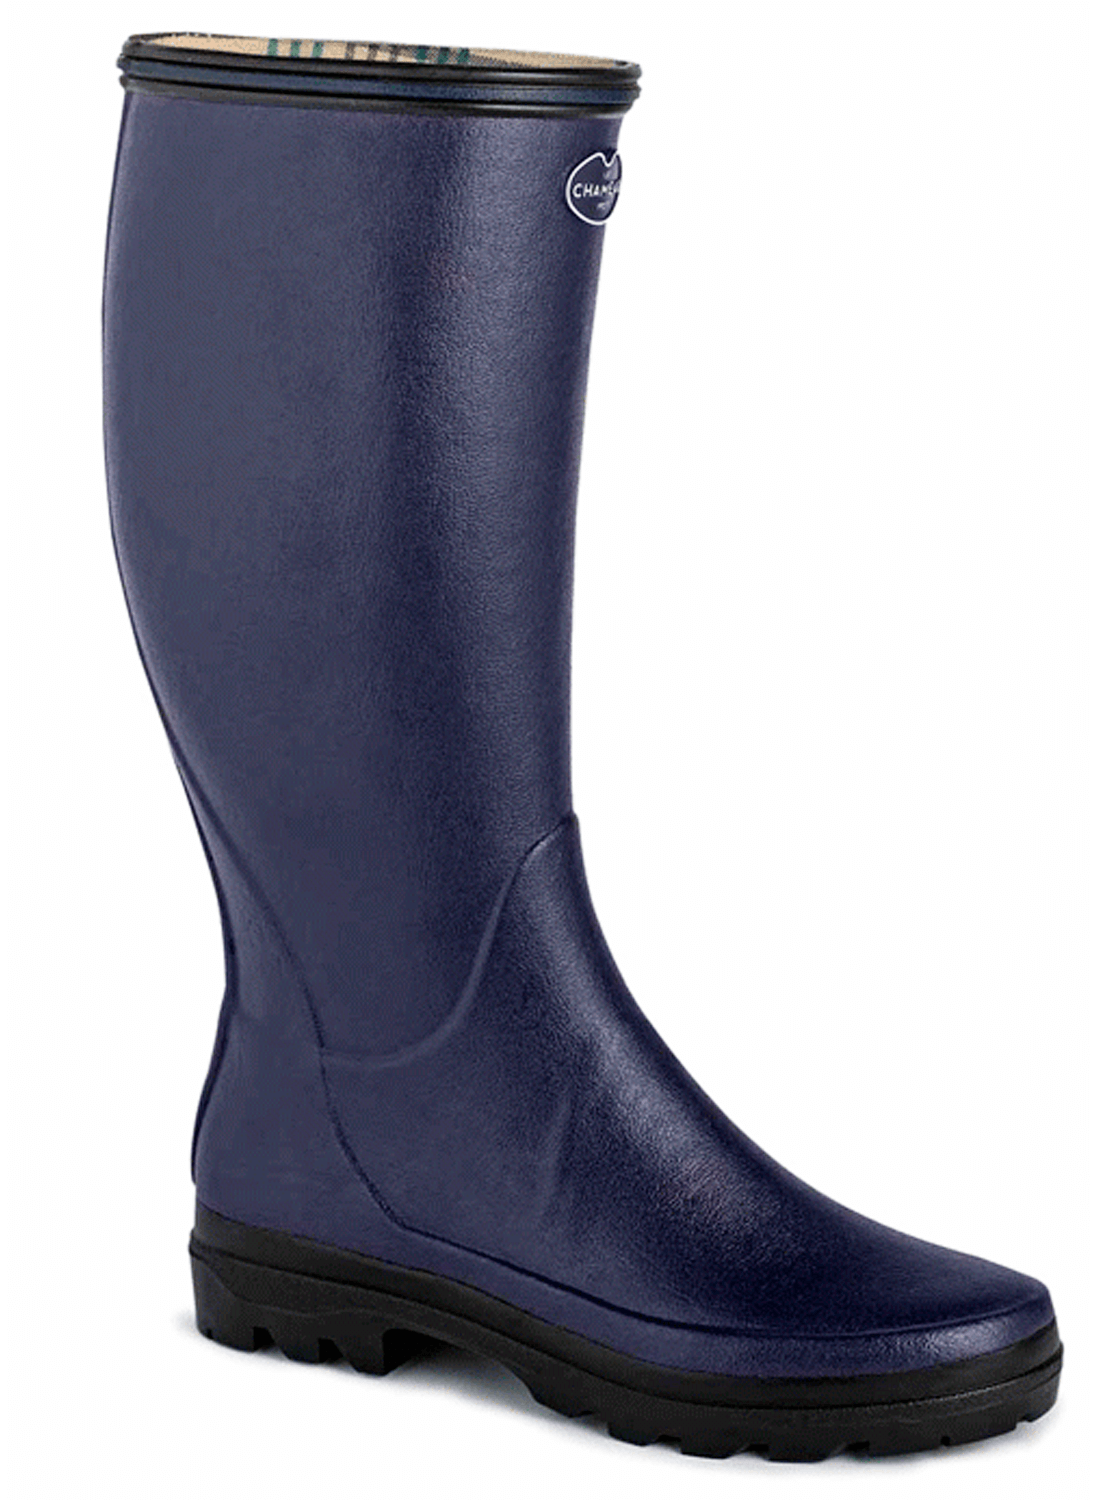 993b168e8 Le Chameau Ladies Giverny Wellingtons - Bredon Hill Country